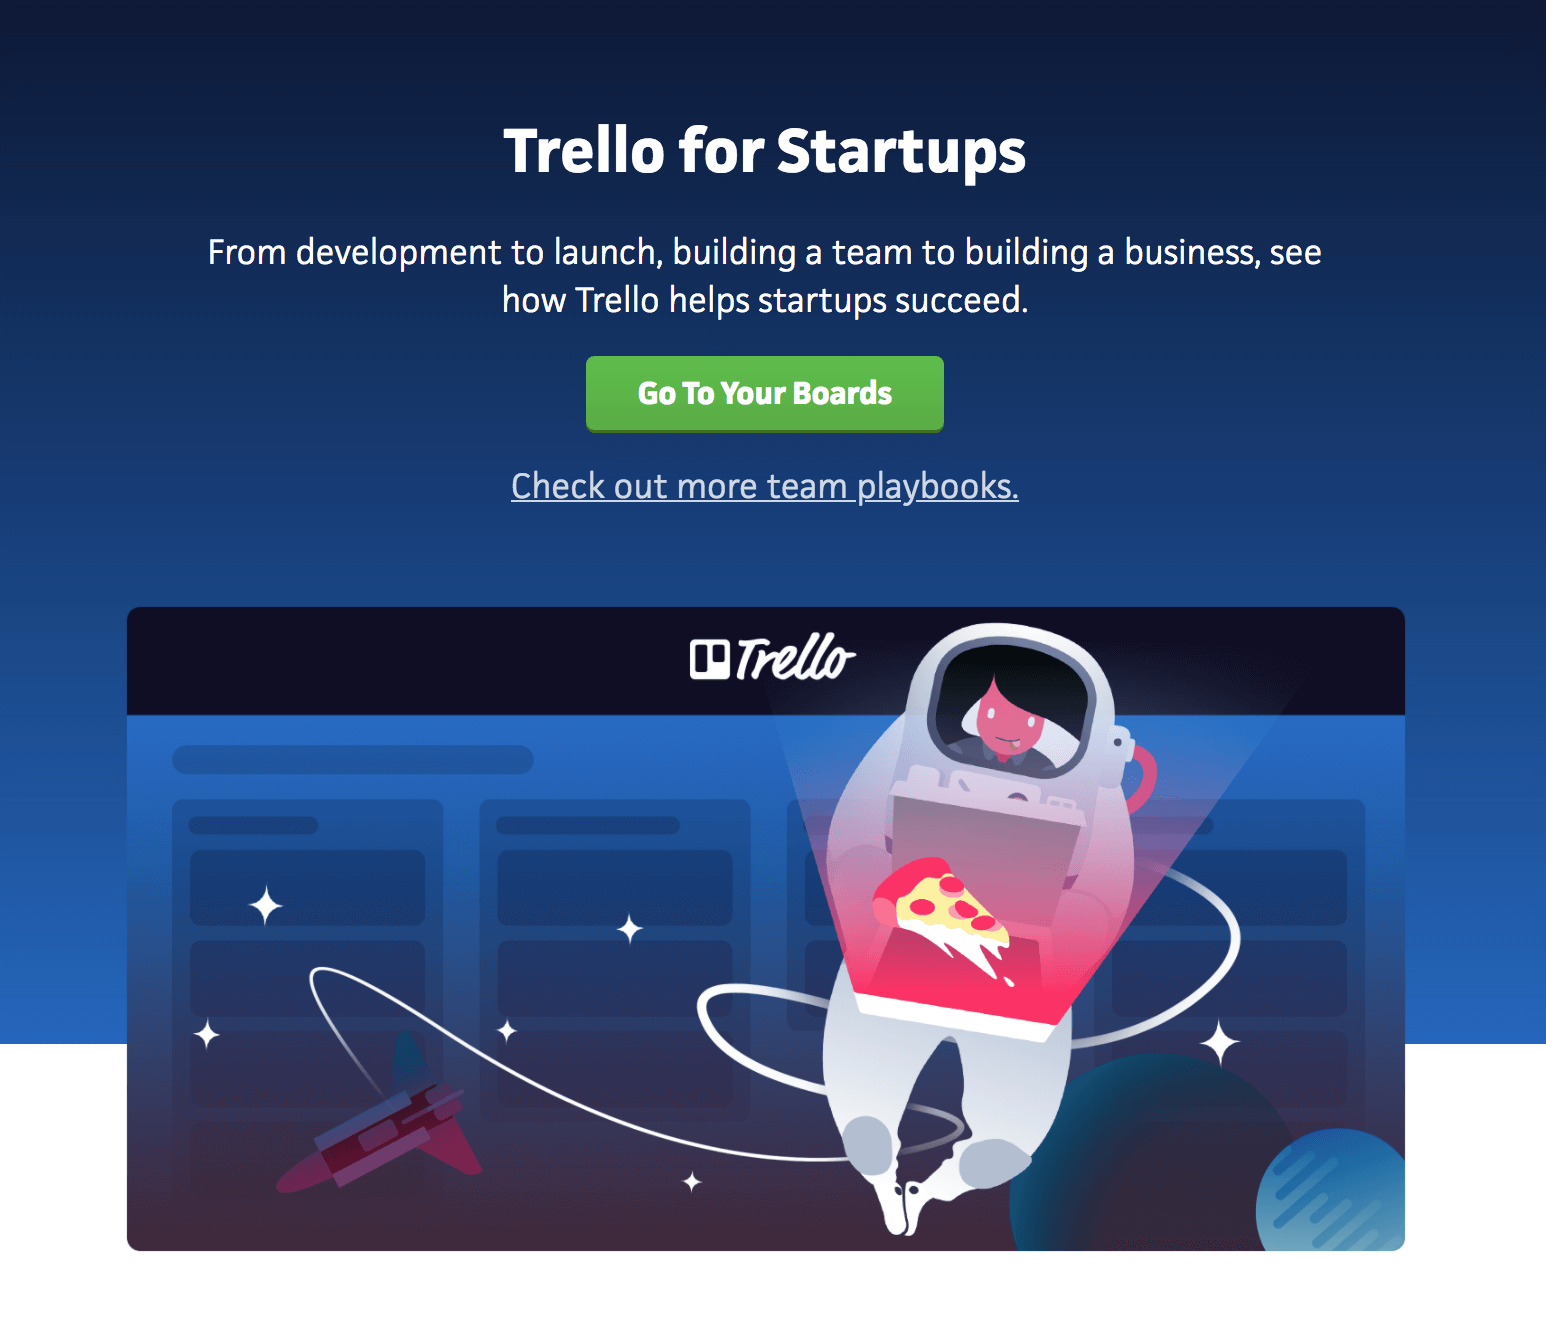 How to build a successful startup with the help of Trello